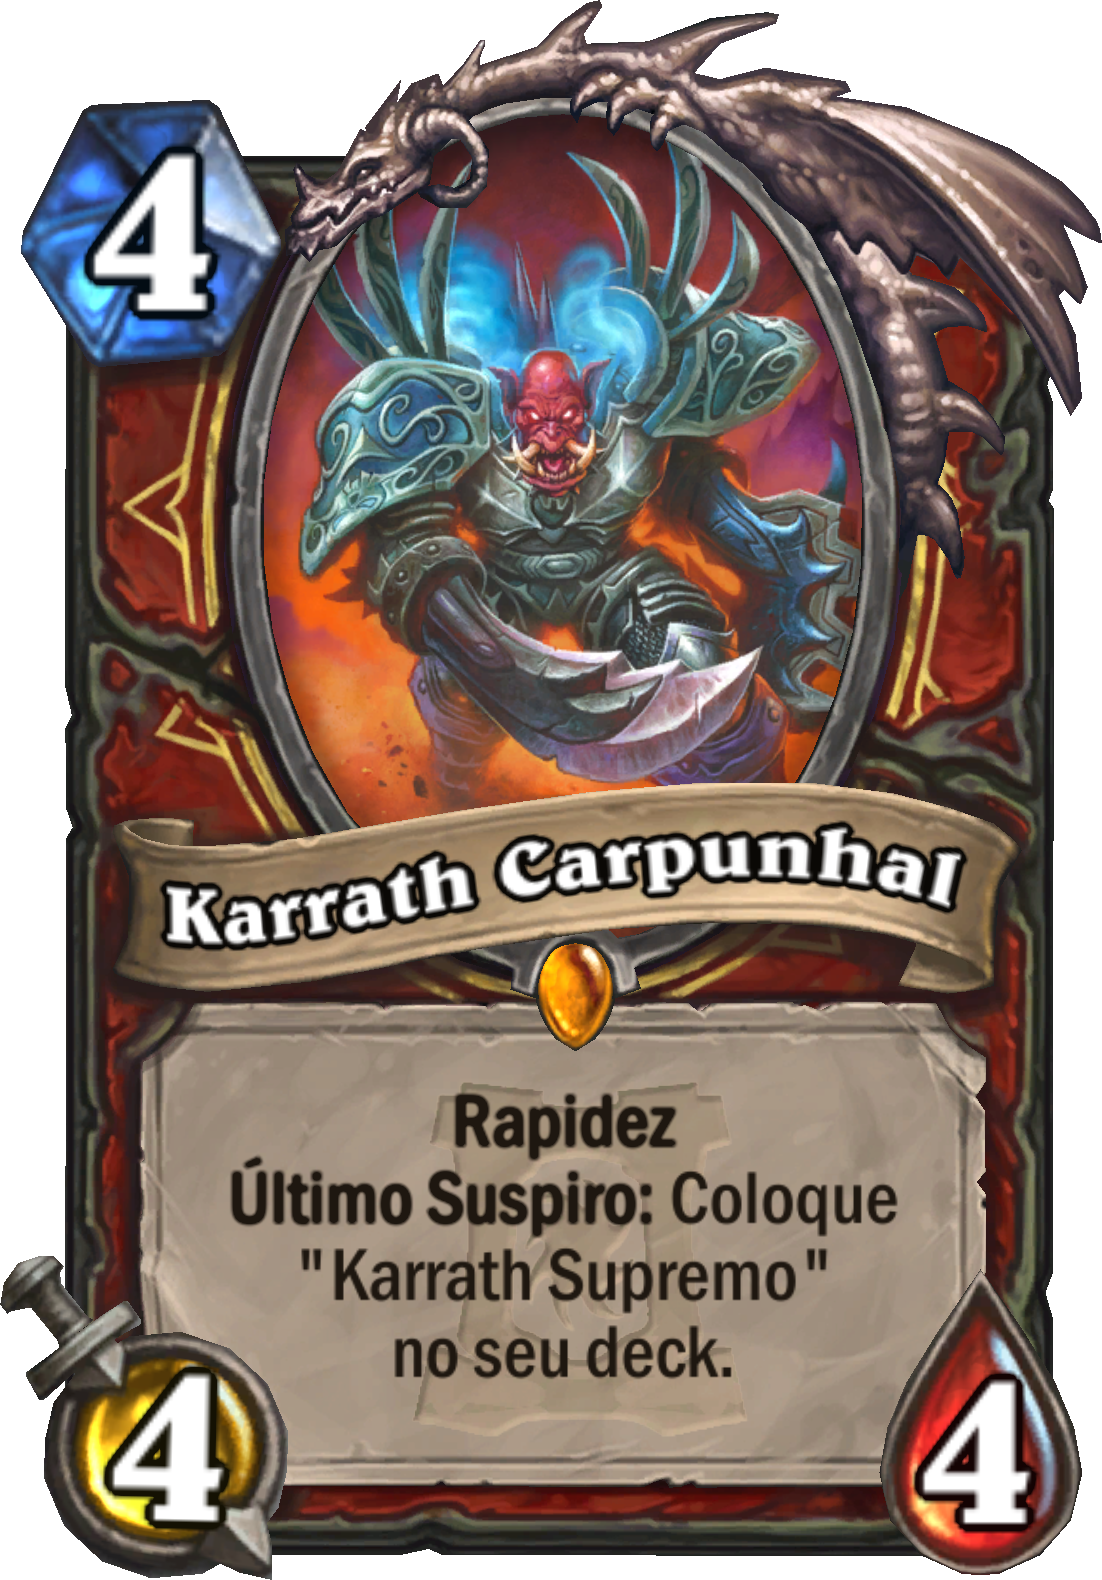 Karrath Carpunhal